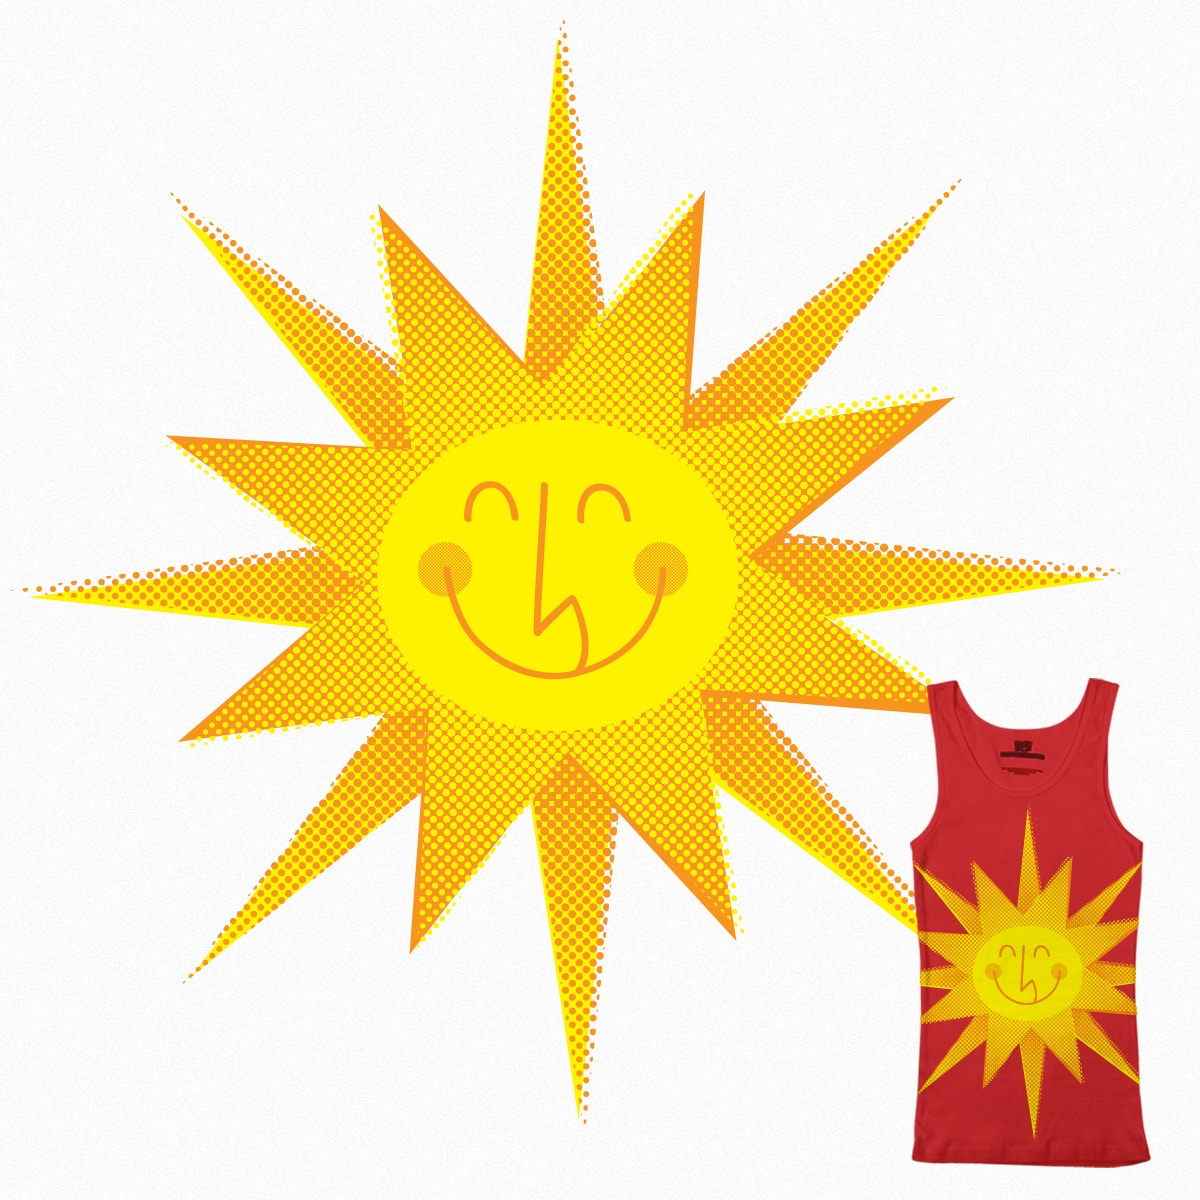 The Smiling Sun by Firehat45 on Threadless